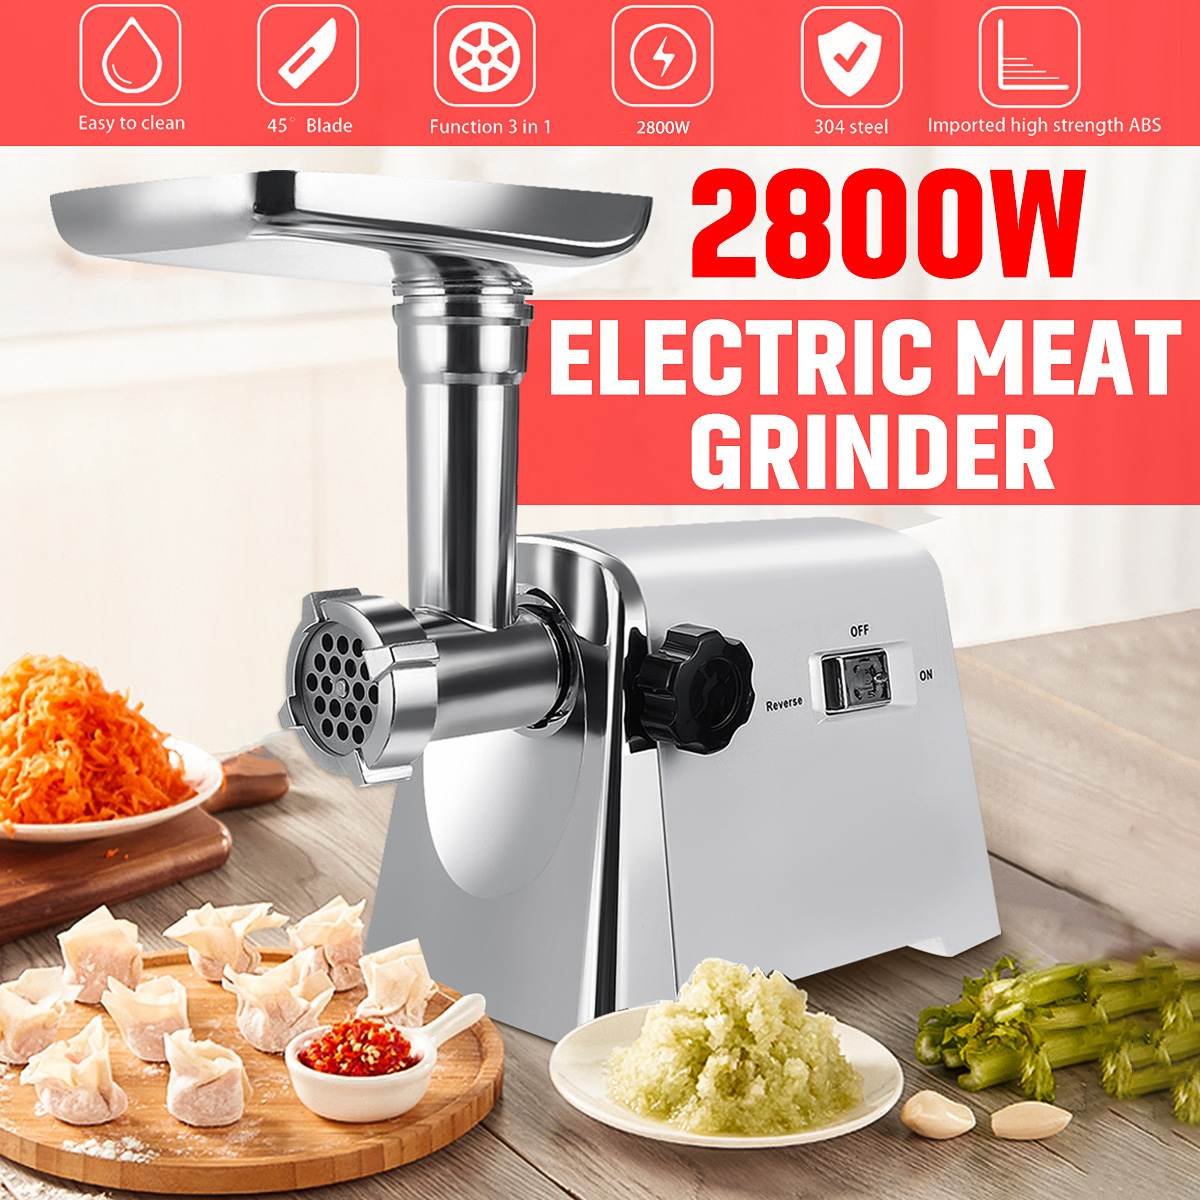 2800W Electric Meat Grinder Home Sausage Maker Meats Mincer Food Grinding Mincing Cutter Machine For Household Kitchen Tools